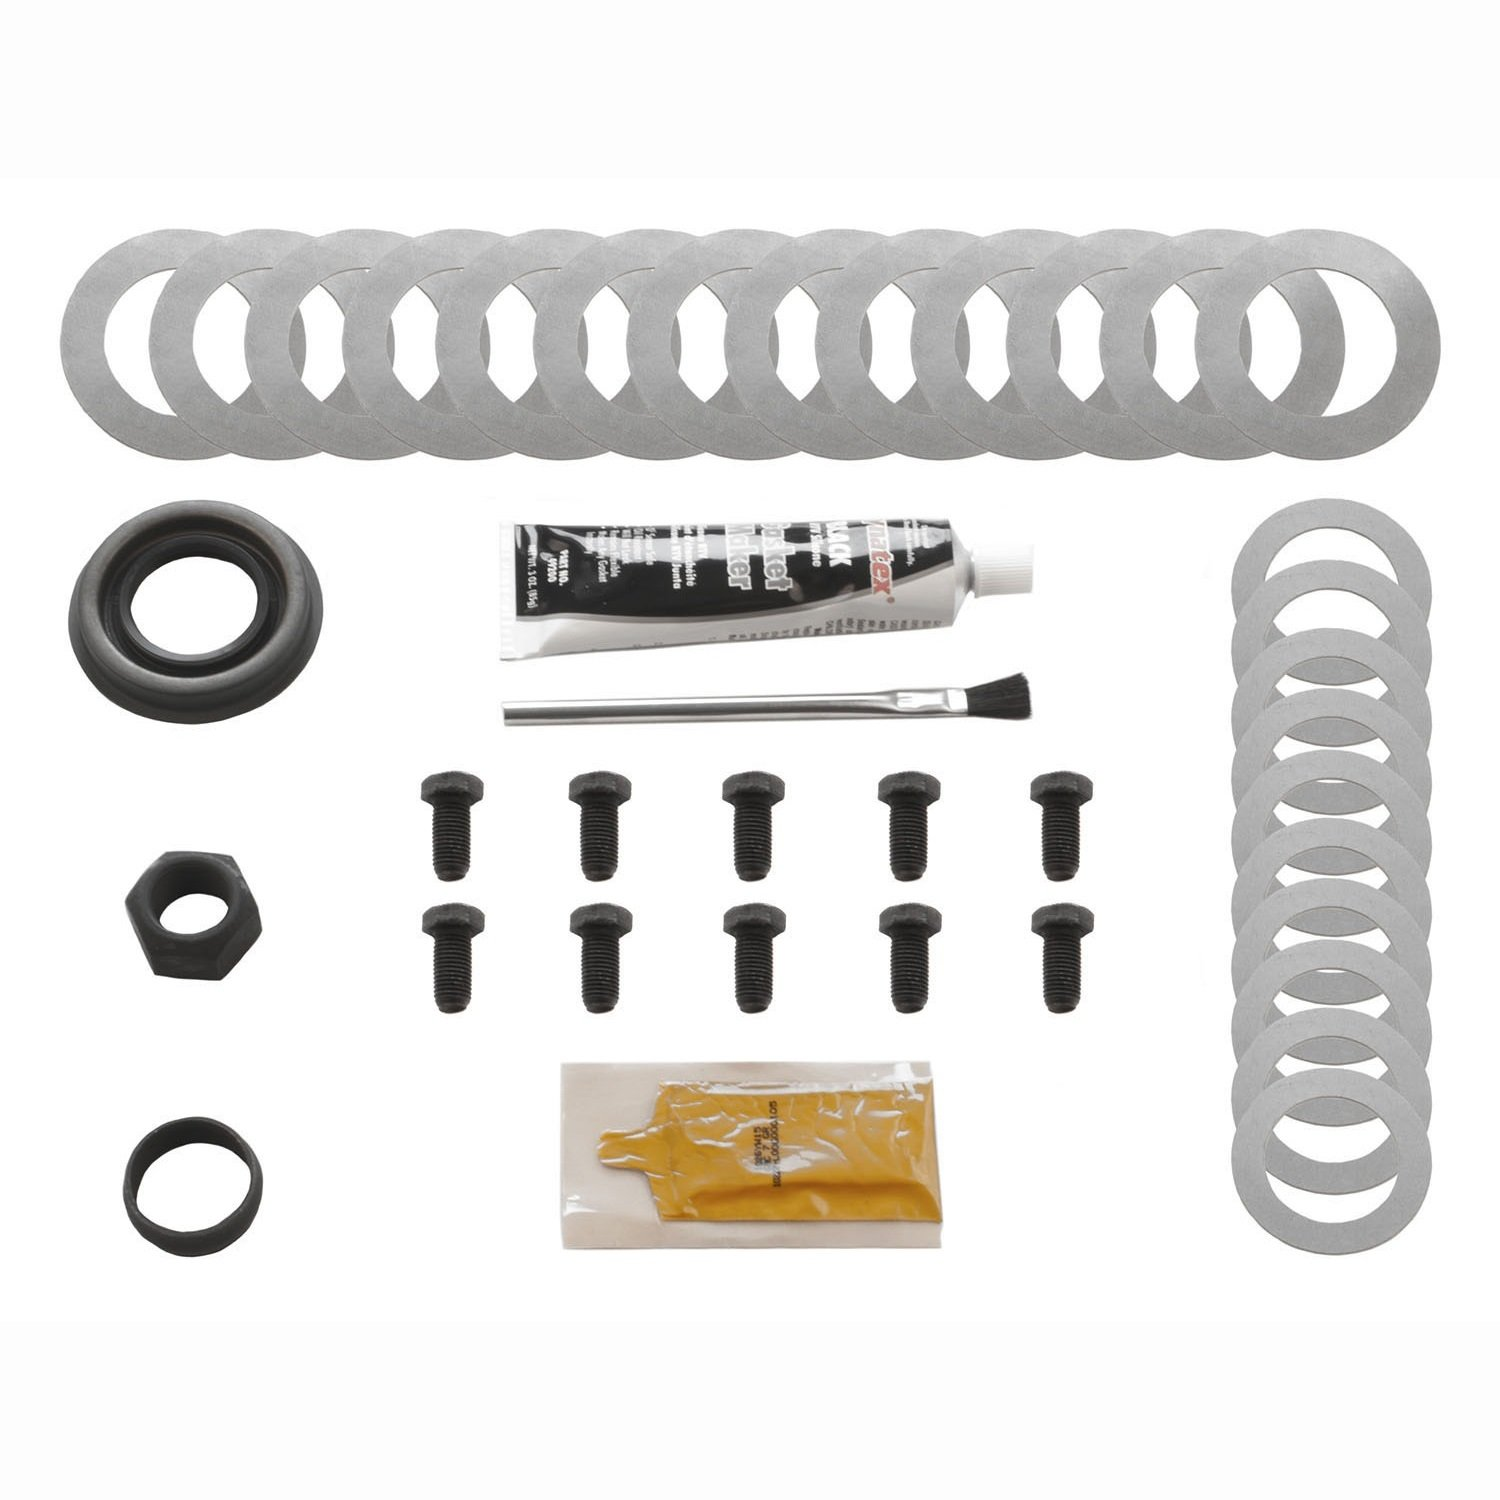 Richmond Gear 831044B Gm 1/2 Install Kit 7.5''' KEYU1